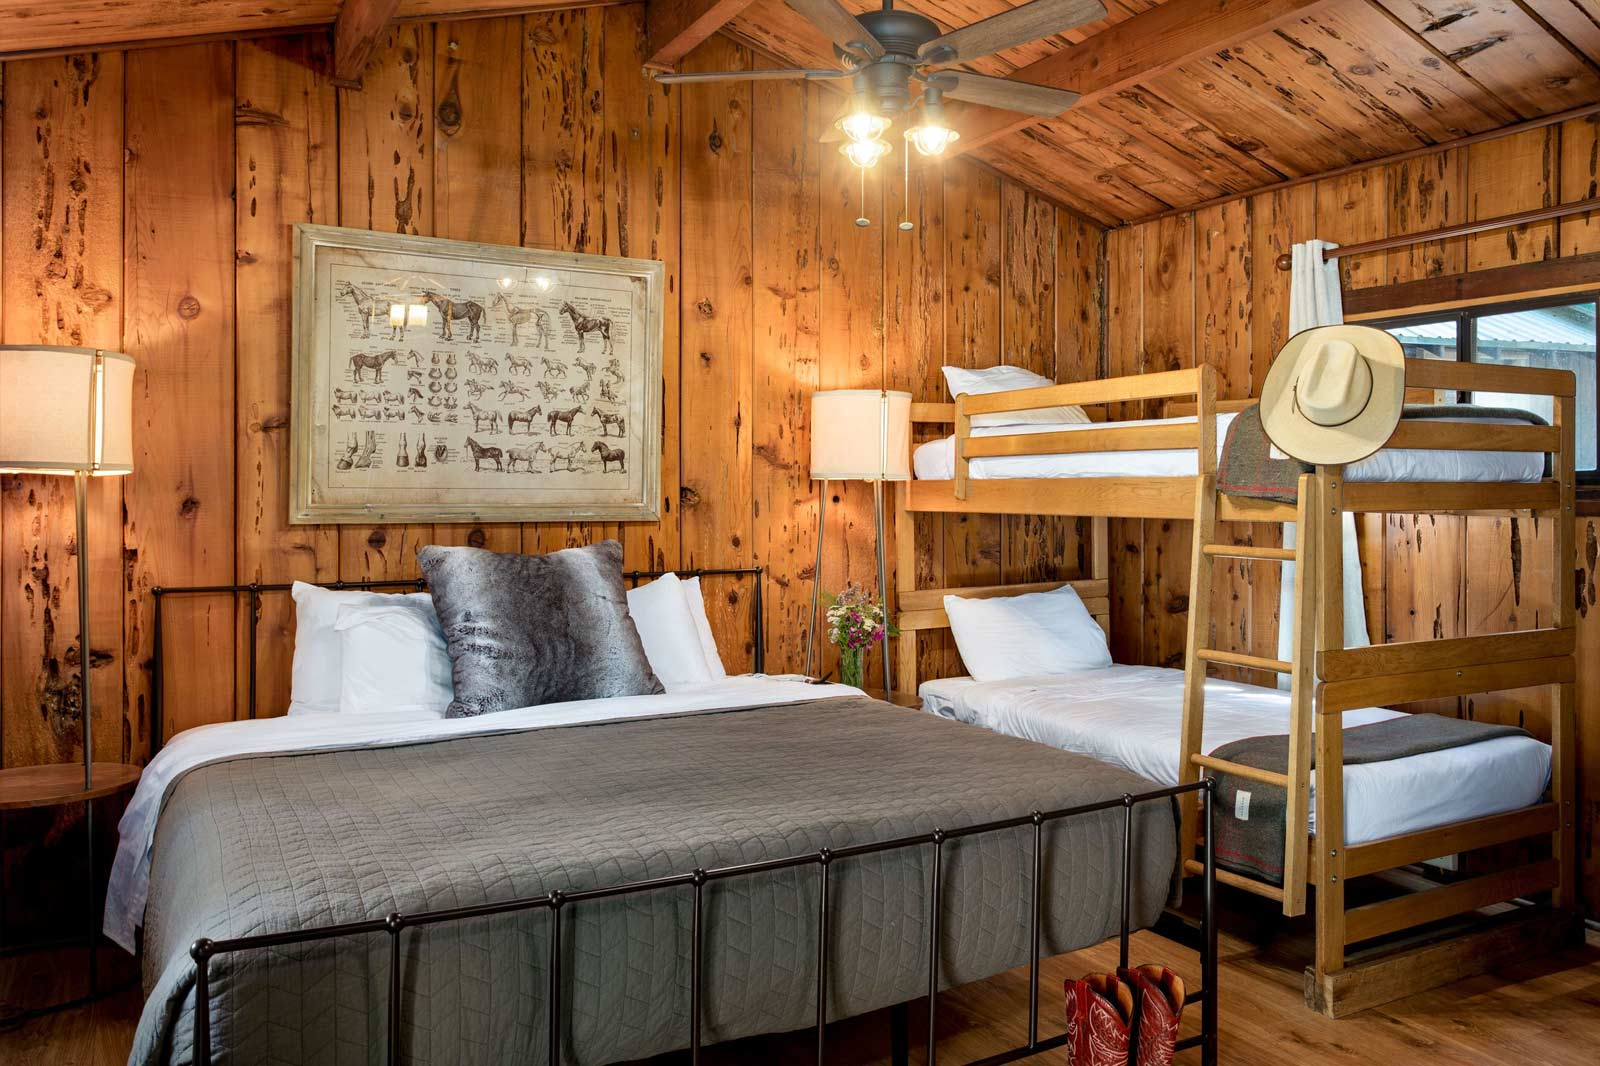 image of creekside bedroom with a king bed and a bunkbed with two twins.